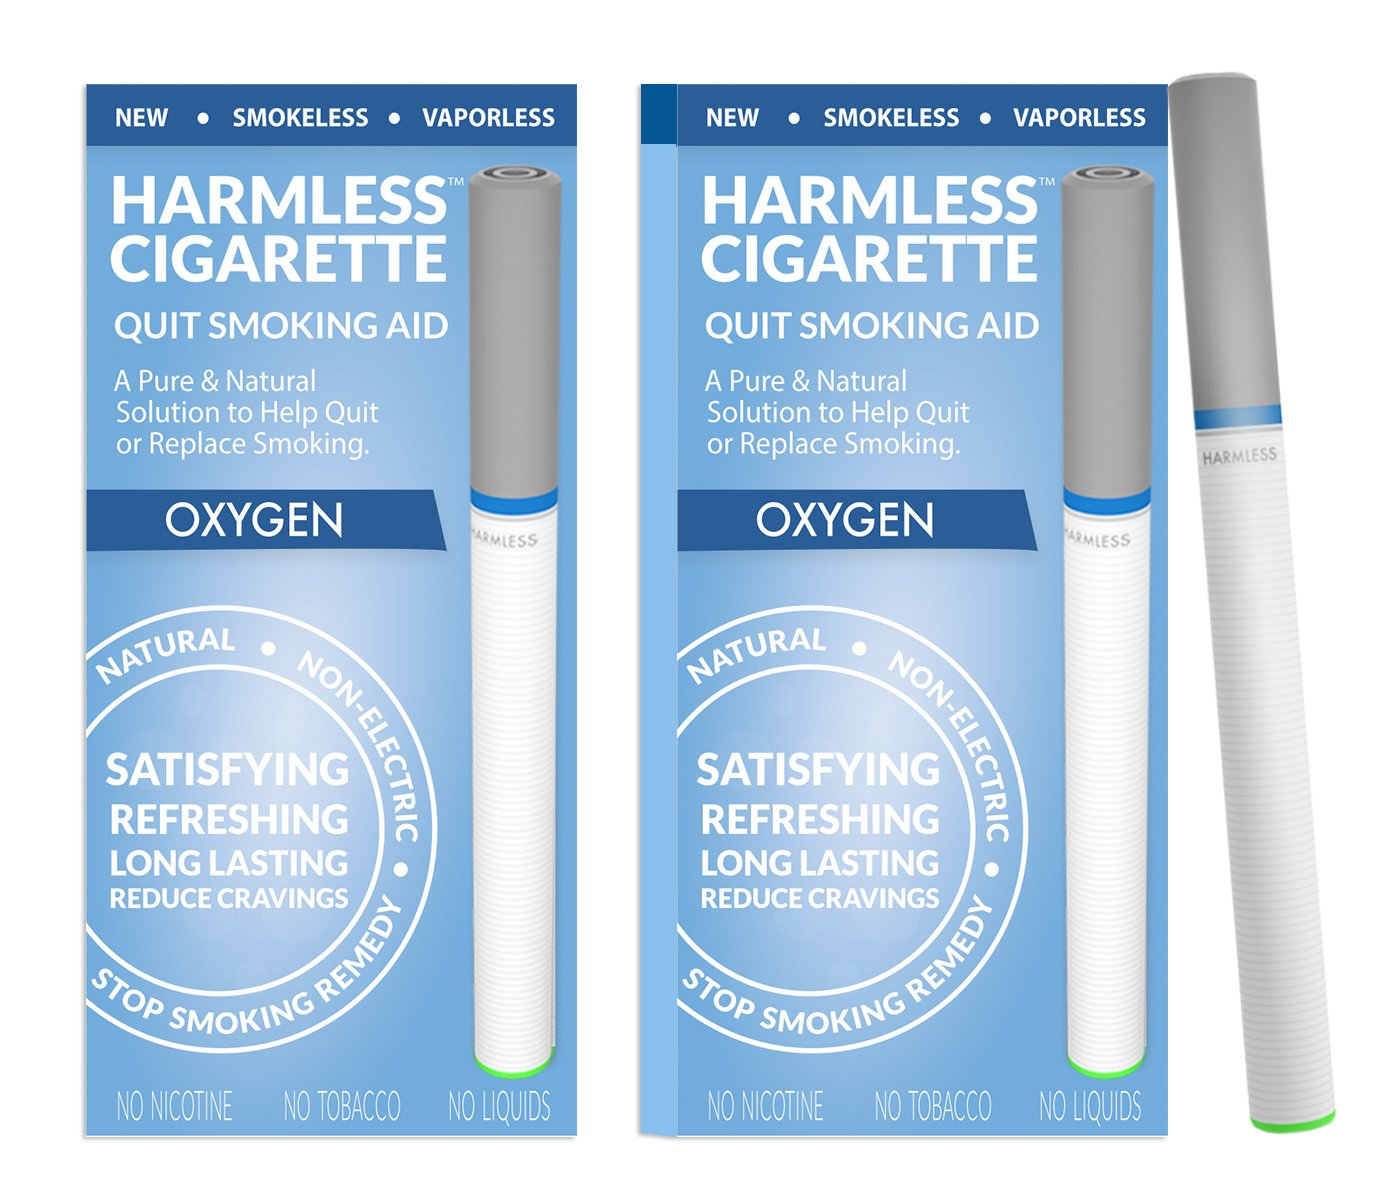 Harmless Cigarette 4 Week Quit Kit/Stop Smoking Aid/Includes FREE Quit Smoking Support Guide. (2 Pack, Oxygen 2.0)